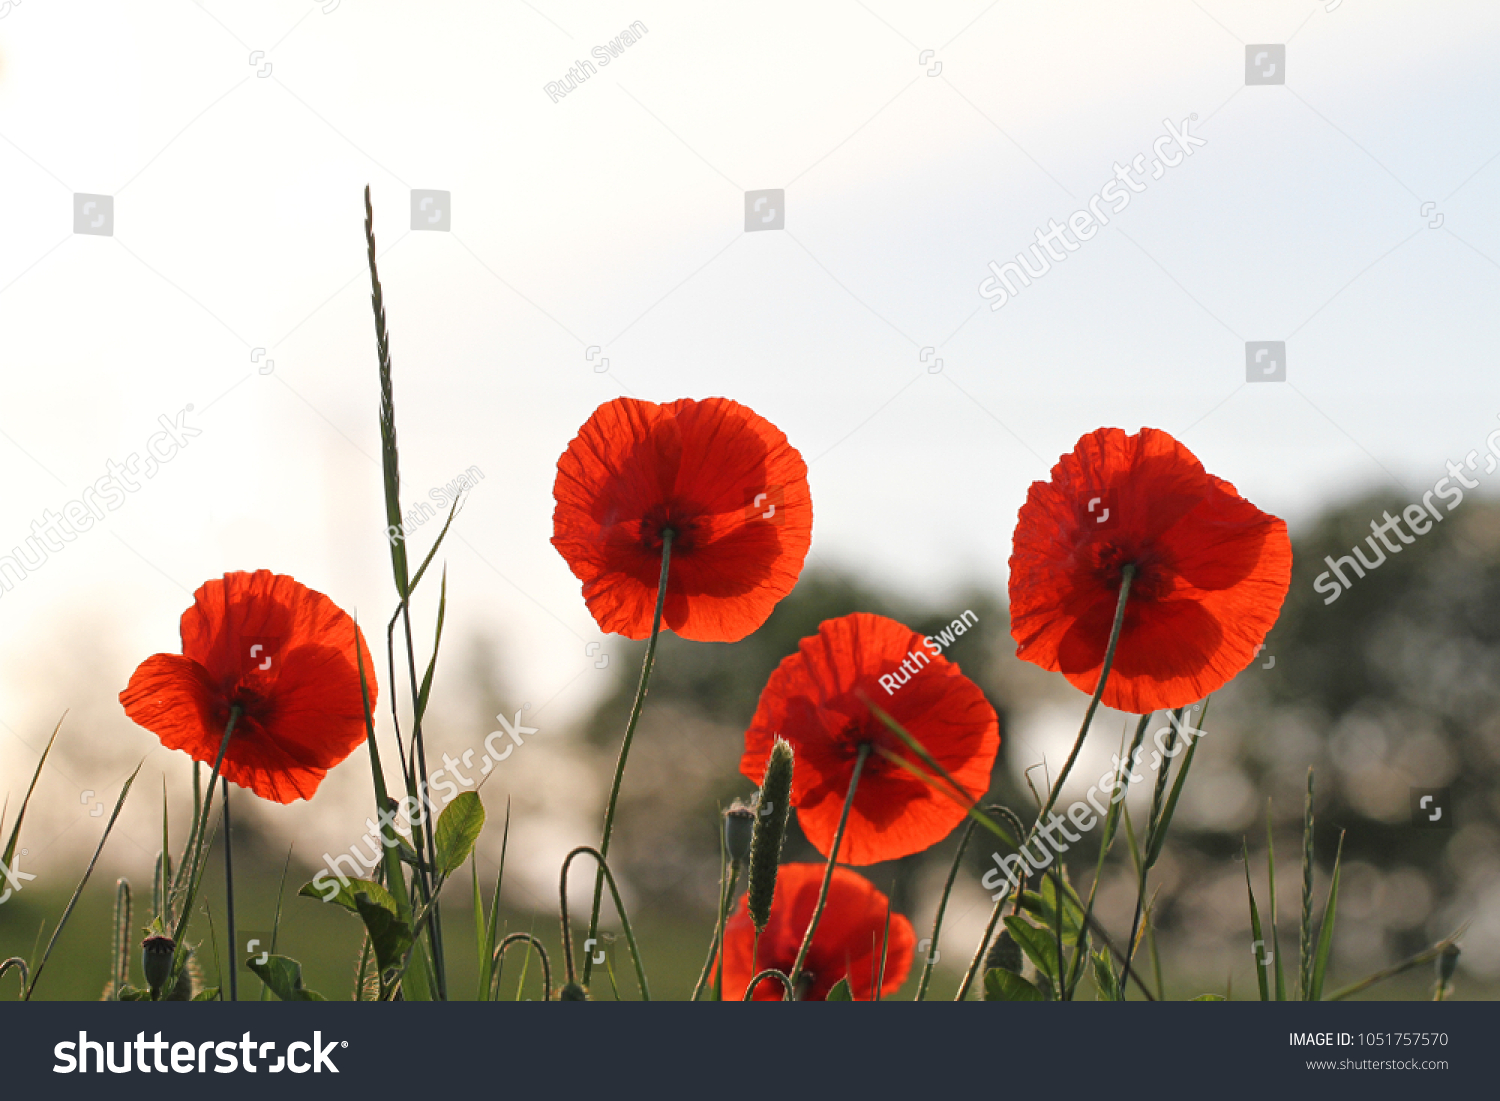 Poppy flowers papaver rhoeas poppies light stock photo 100 legal poppy flowers or papaver rhoeas poppies with the light behind in italy remembering 1918 the mightylinksfo